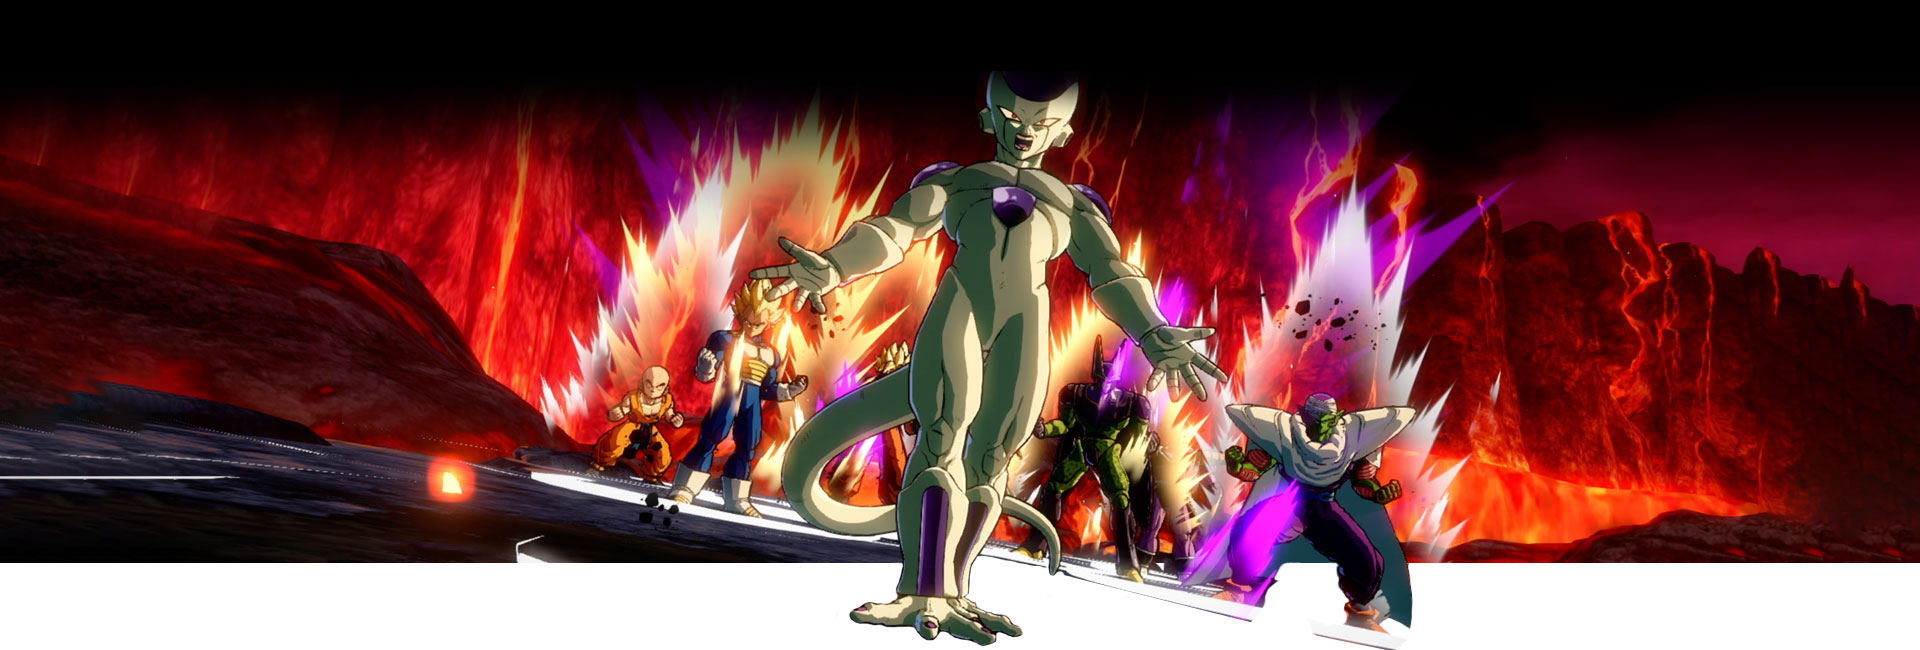 Freiza and other DRAGON BALL FighterZ characters power up in front of a pool of lava.